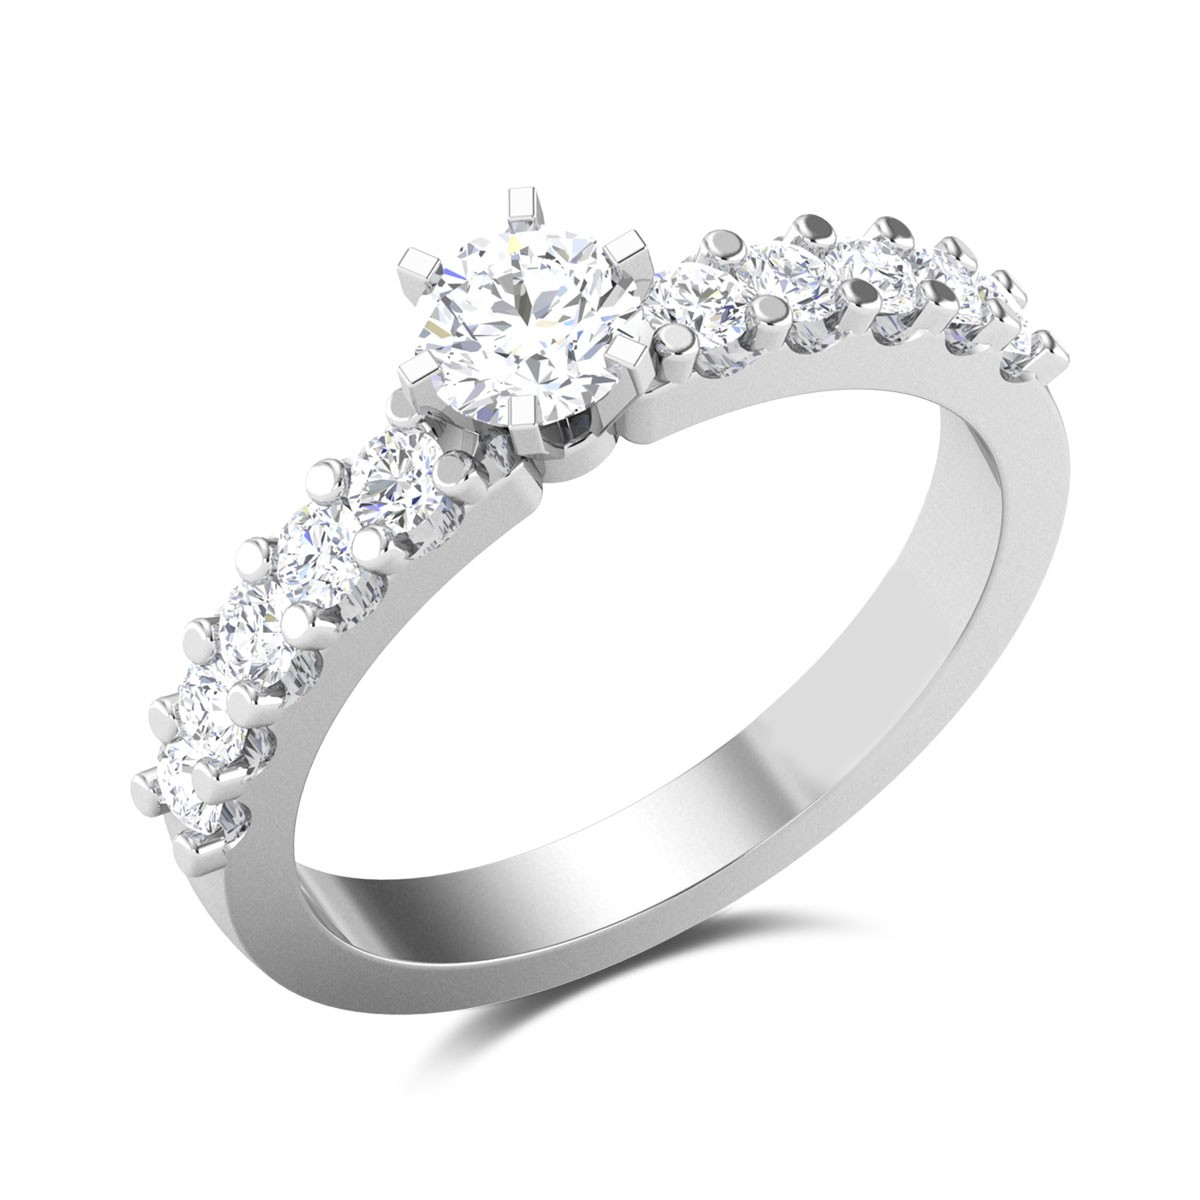 Bhadrika 6 Prong Solitaire Ring